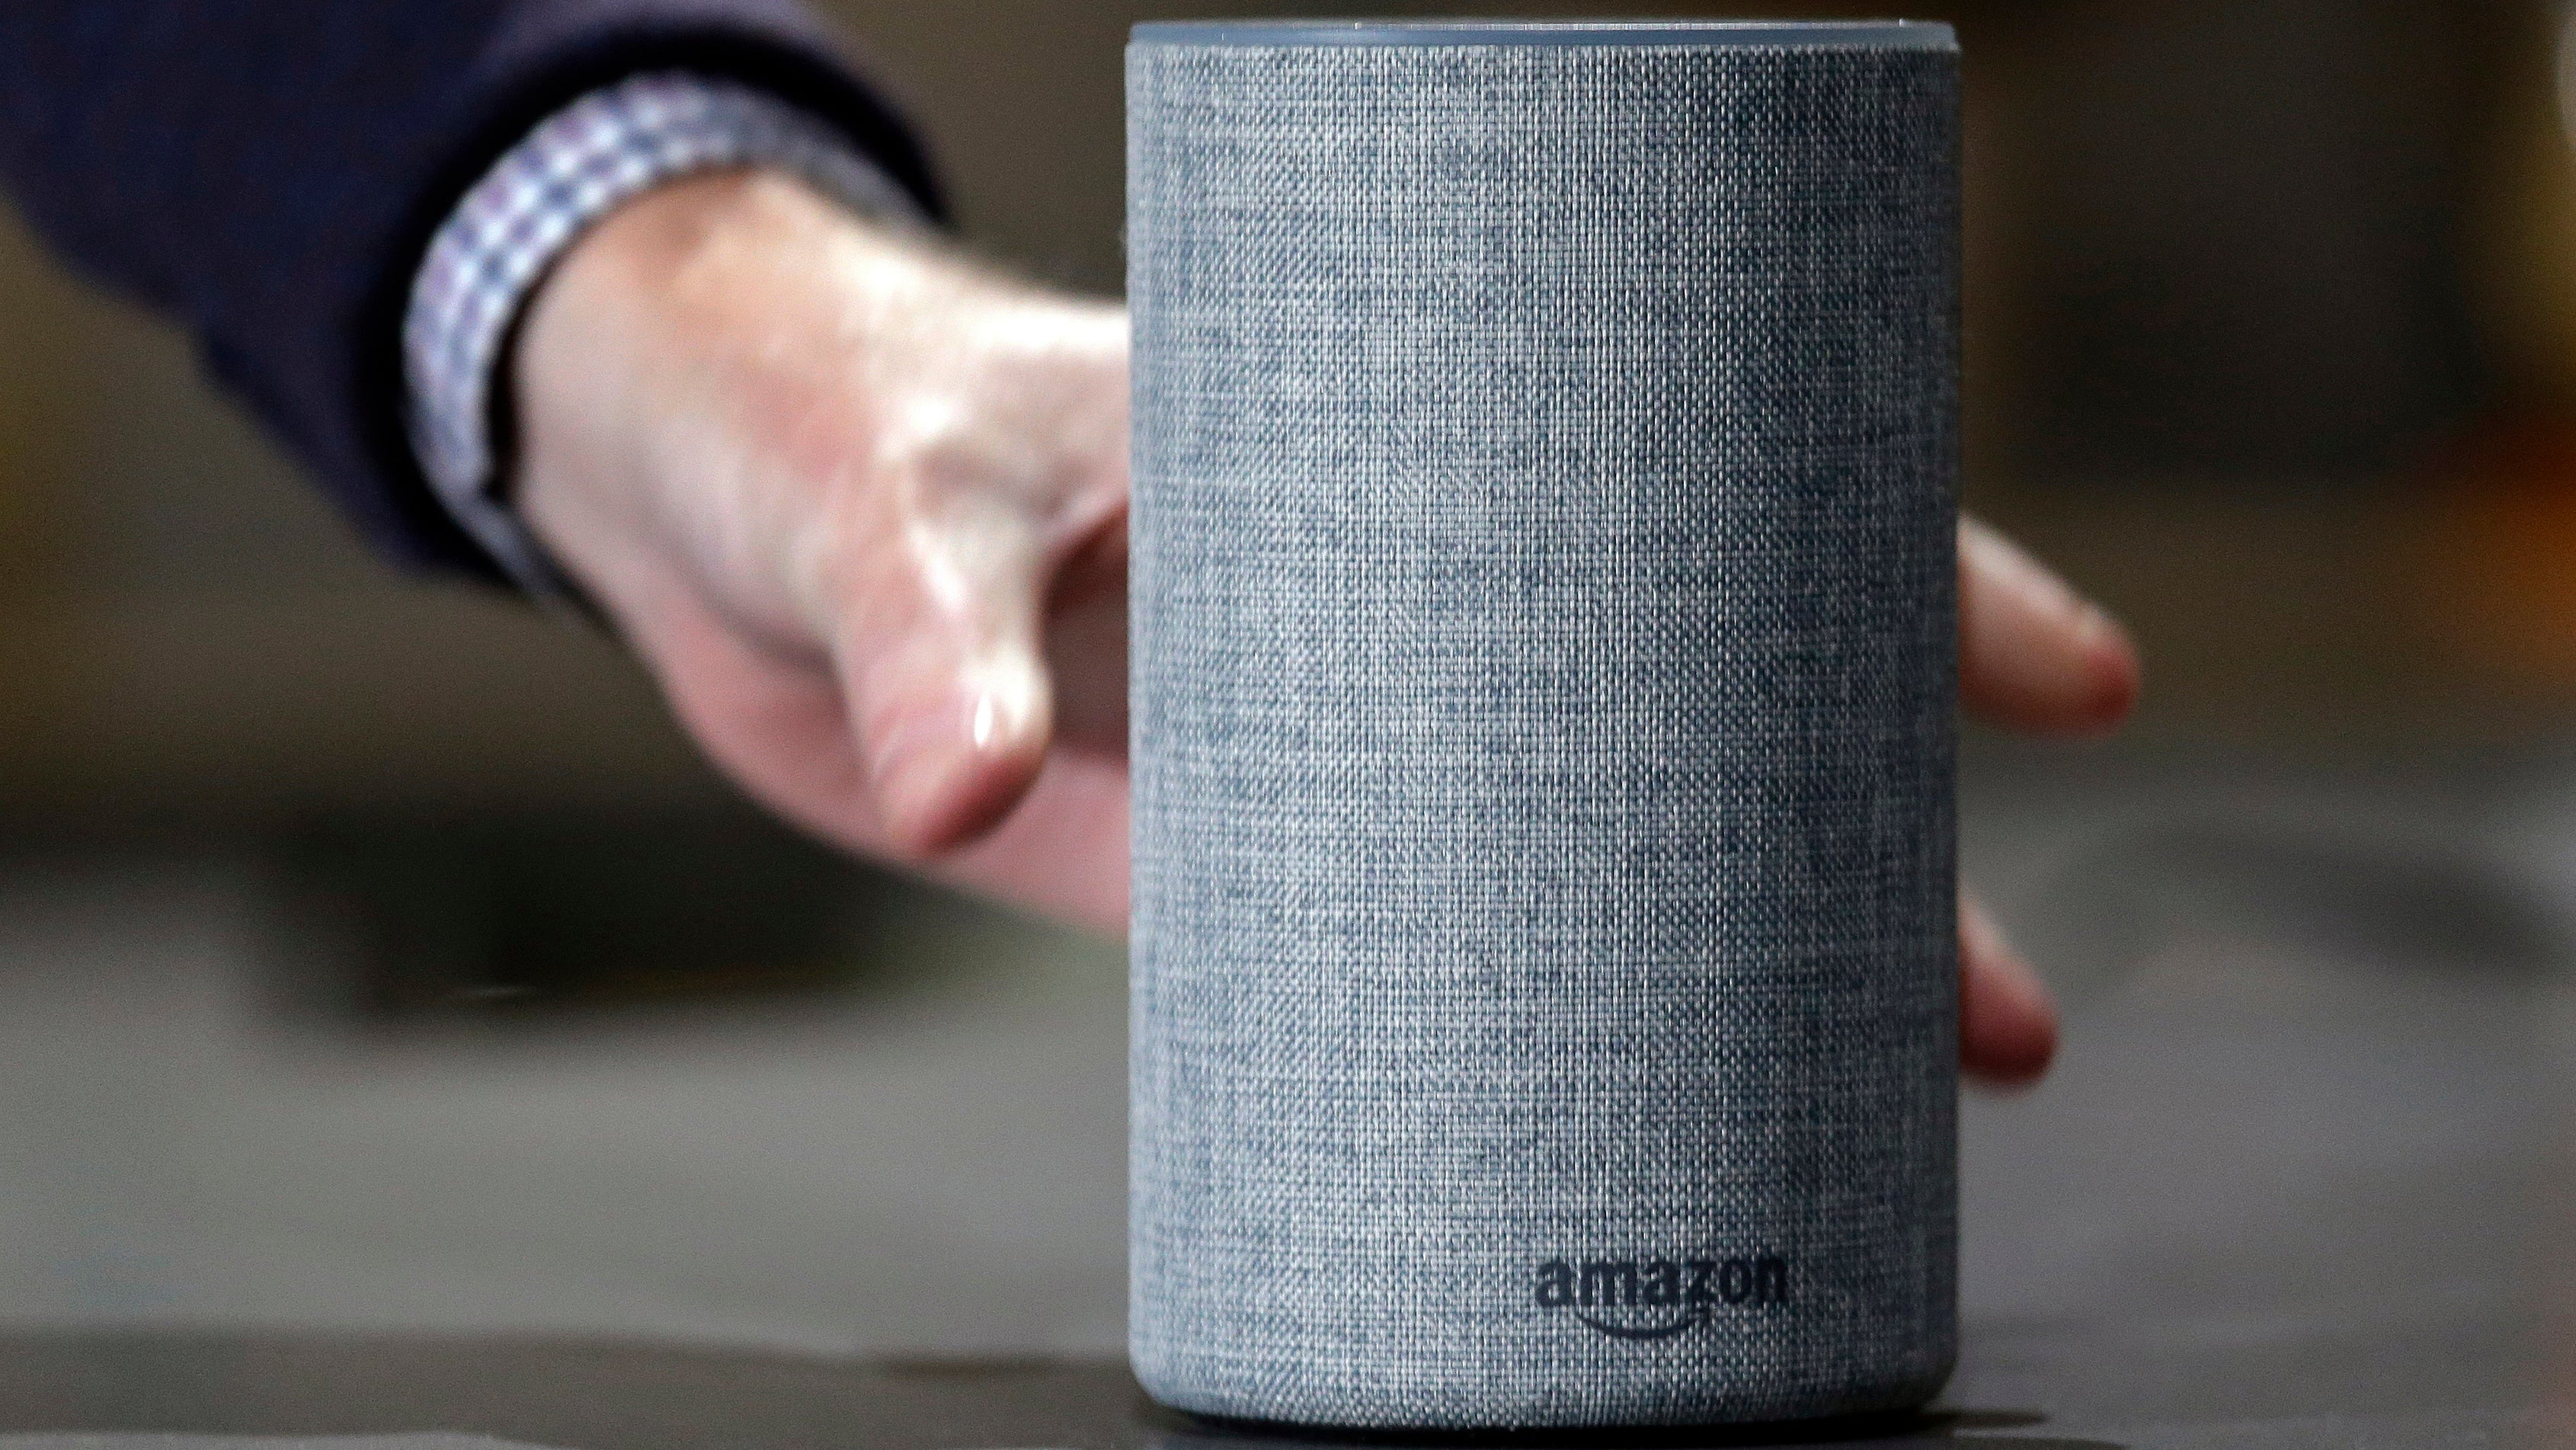 Amazon's Human Helpers Are Quietly Listening In On Some Alexa Recordings